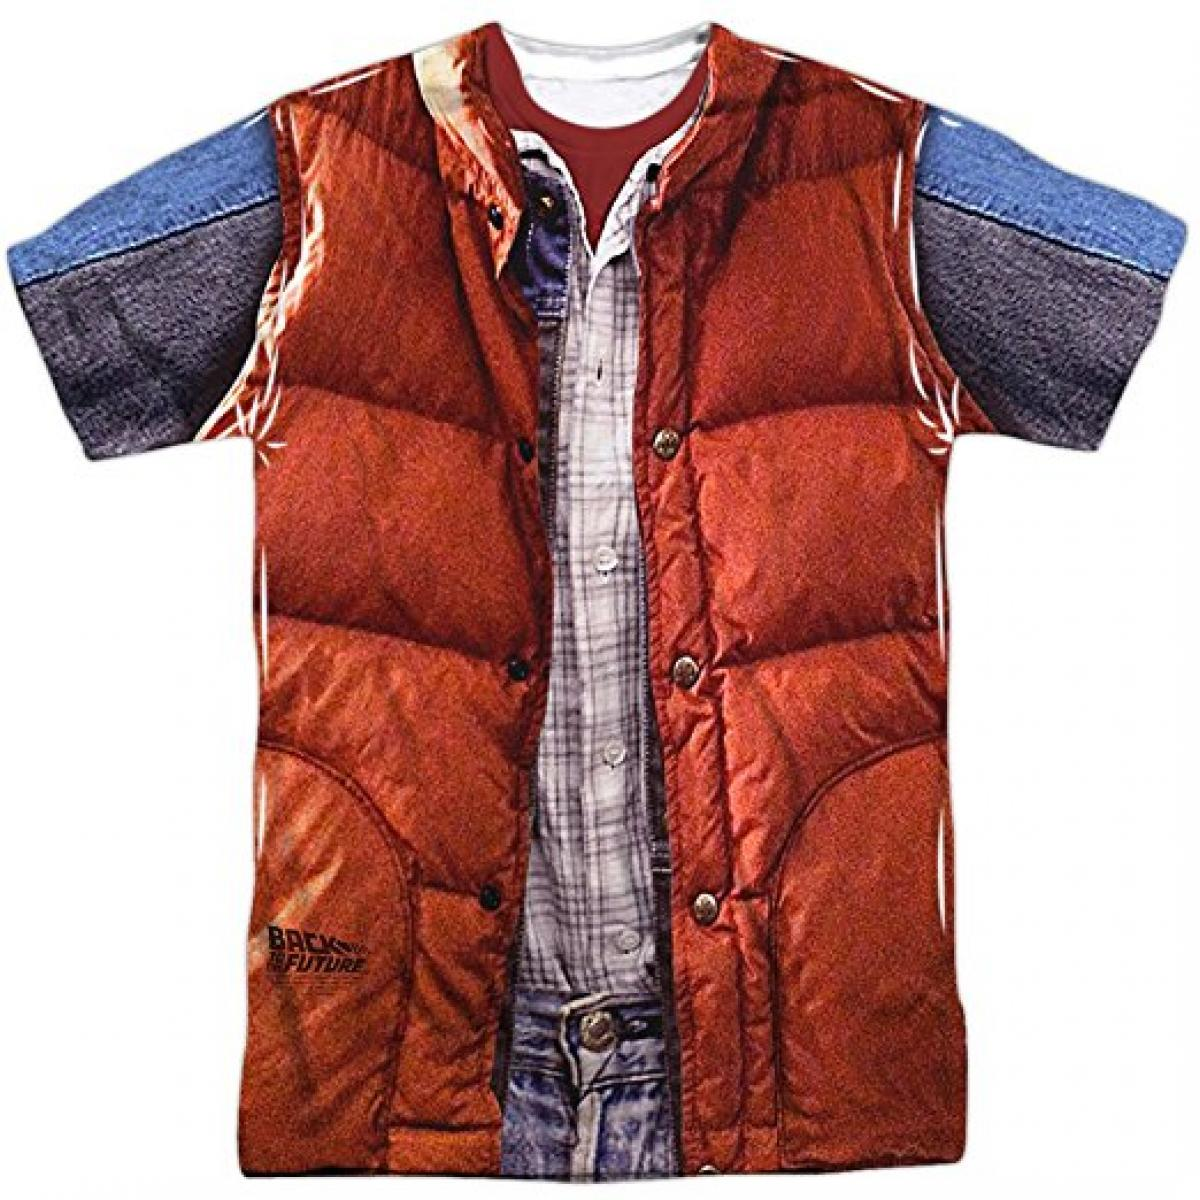 Back To The Future Men's Mcfly Vest Sublimation T-shirt